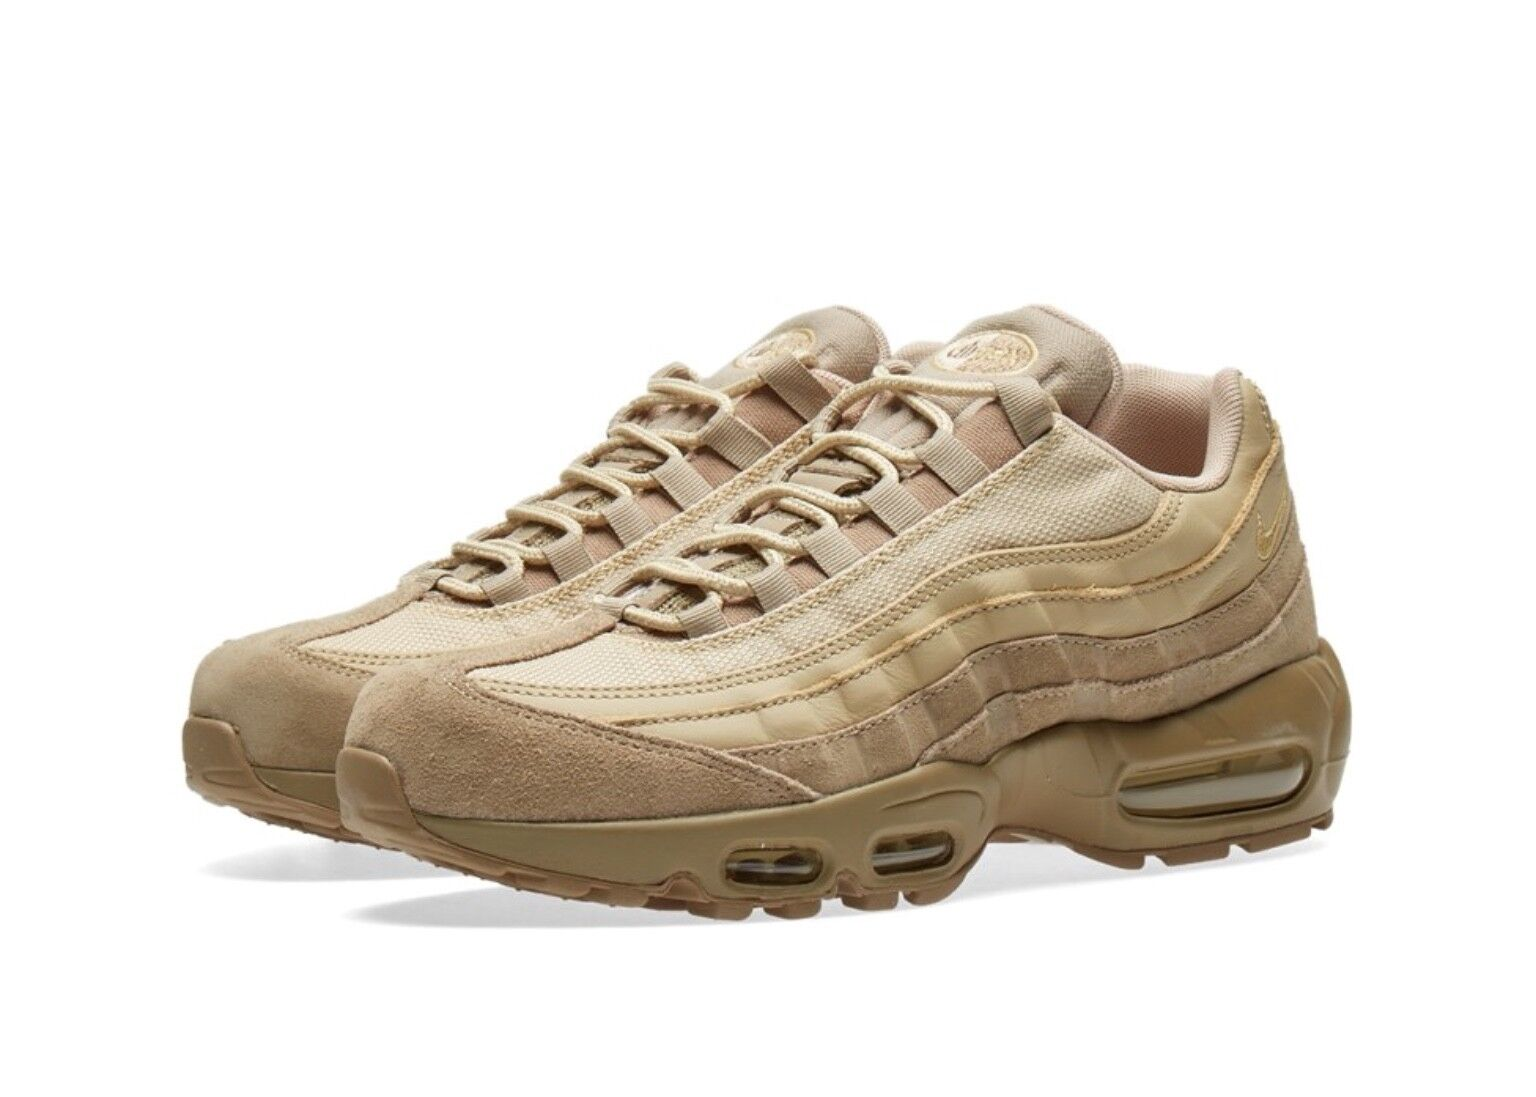 NIKE AIR MAX 95 PREMIUM 538416-202 Khaki Gold BNIB no lid UK6.5/EU40.5/US7.5